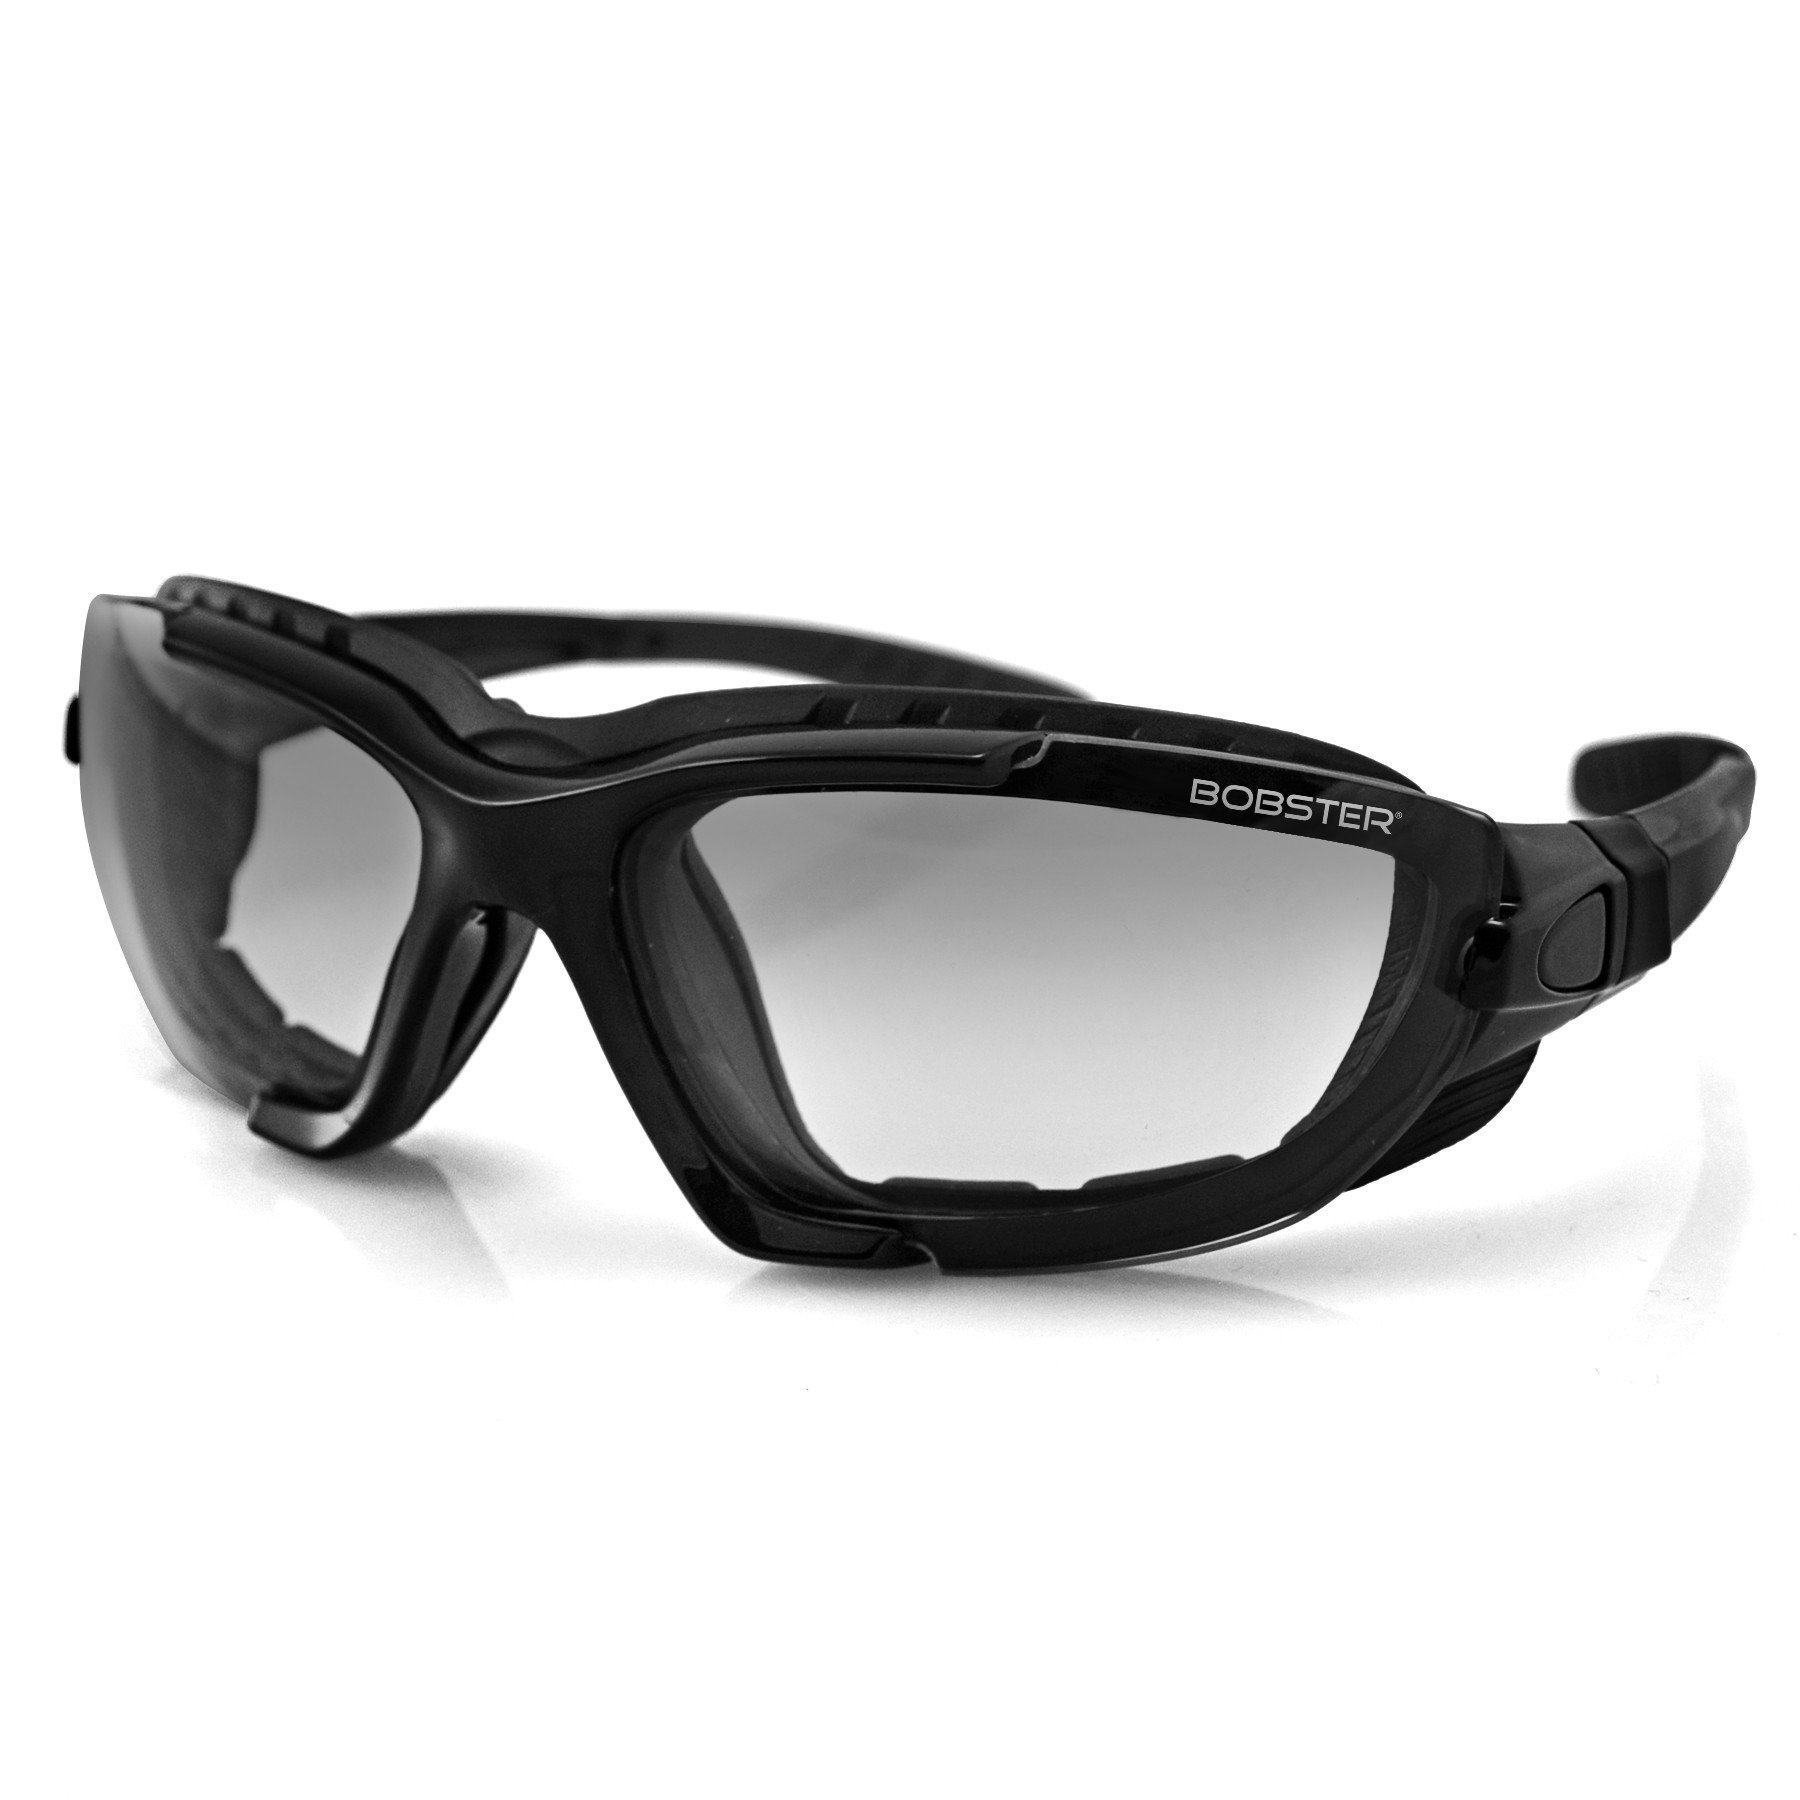 Bobster Renegade Sport Sunglasses, Black Frame/Photochromic Lens